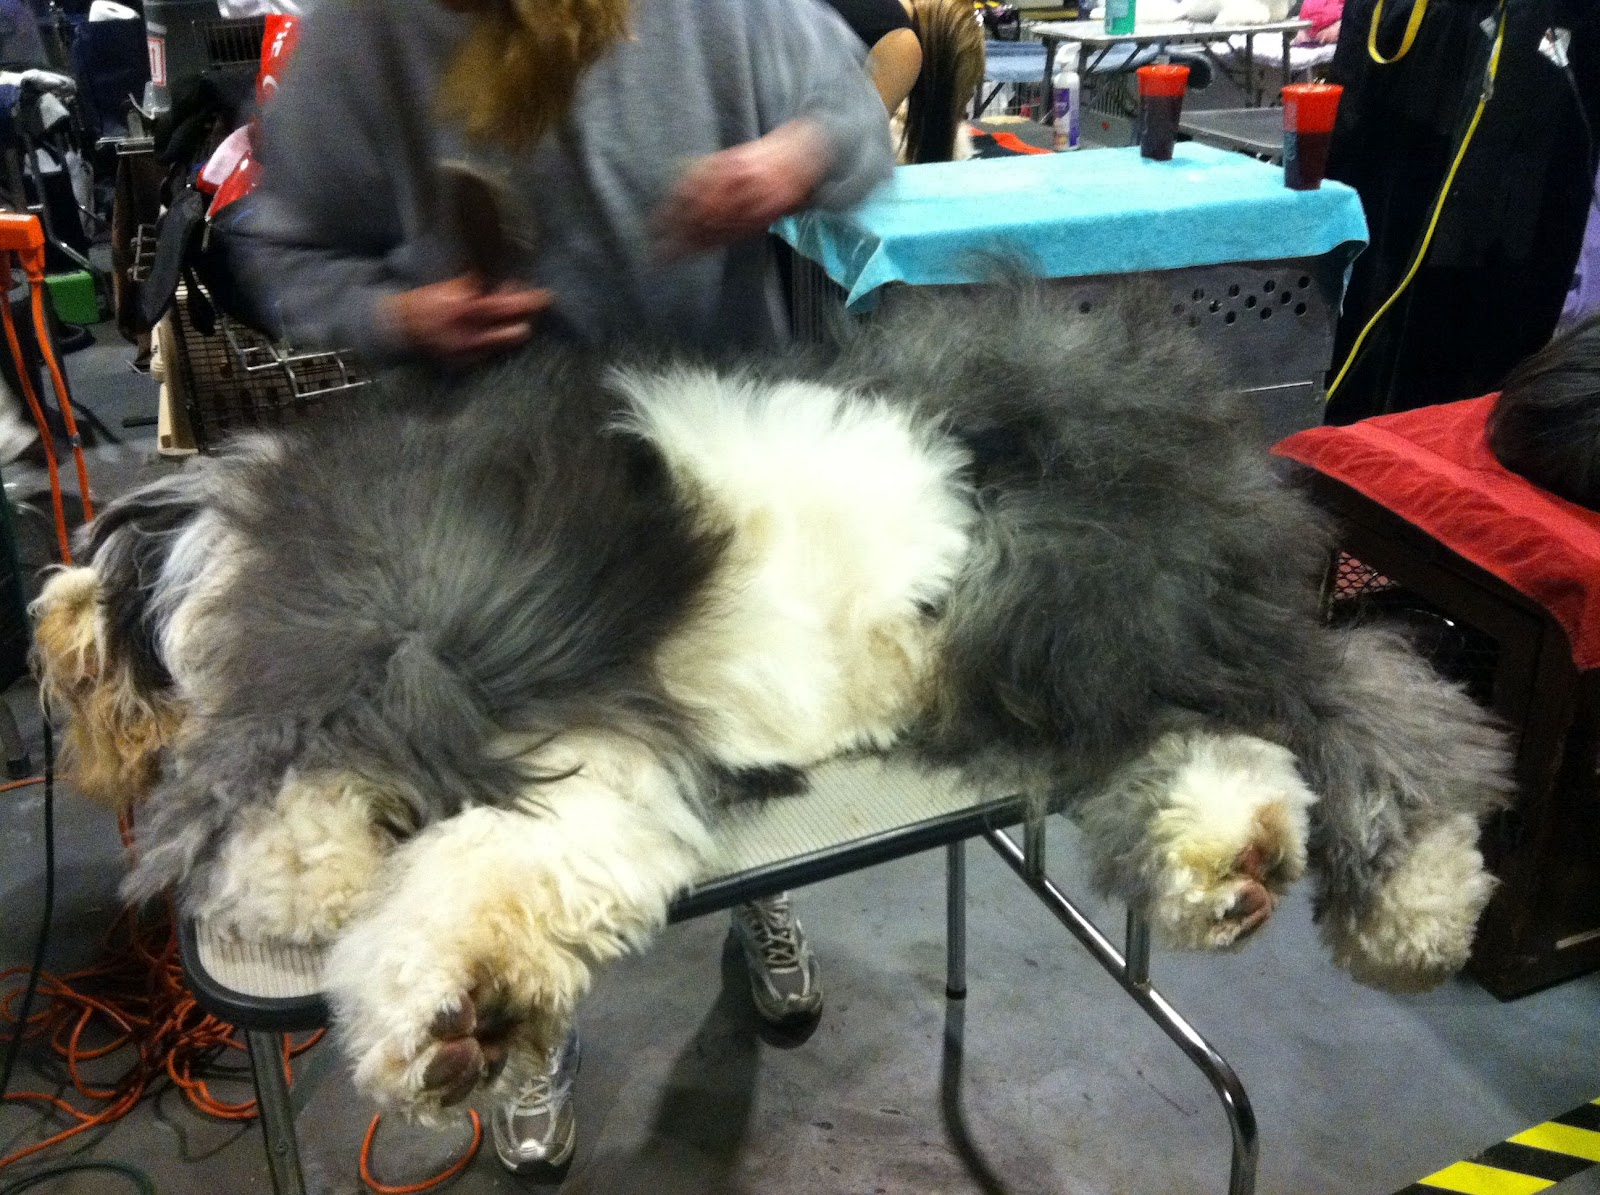 Queer New York: The 136th Westminster Kennel Club Dog Show